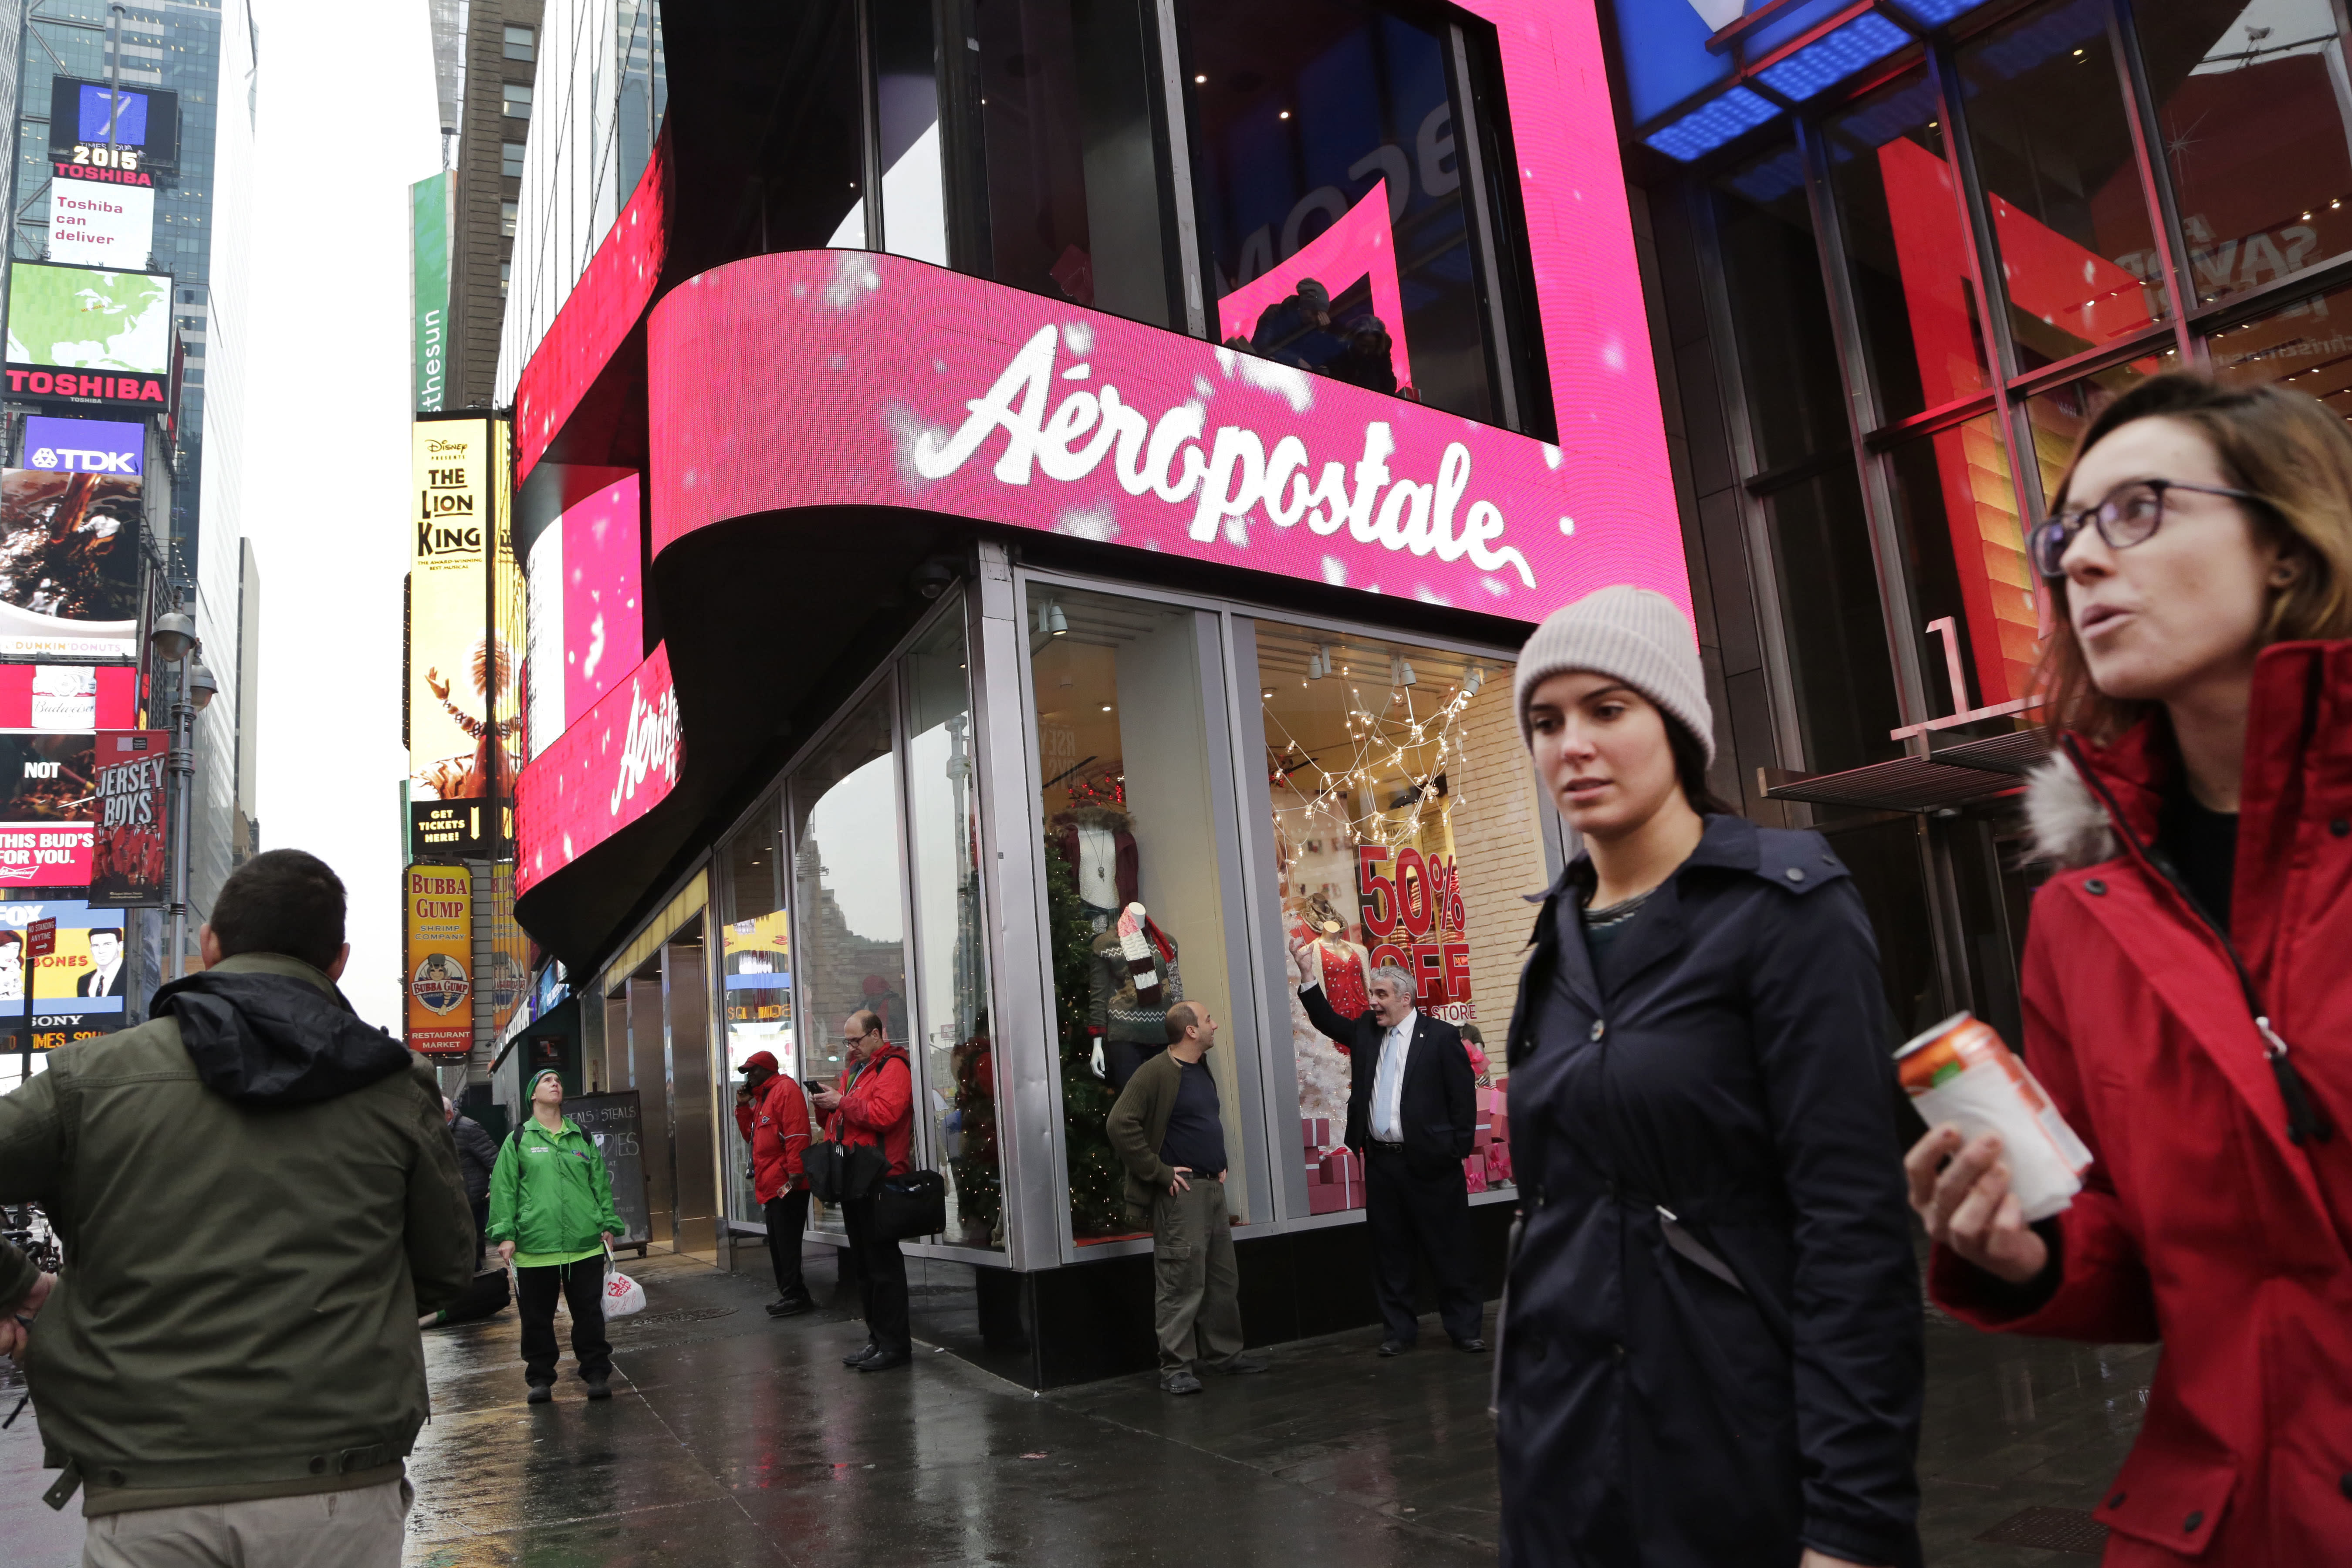 Aeropostale, one-time mall king, seeks bankruptcy protection